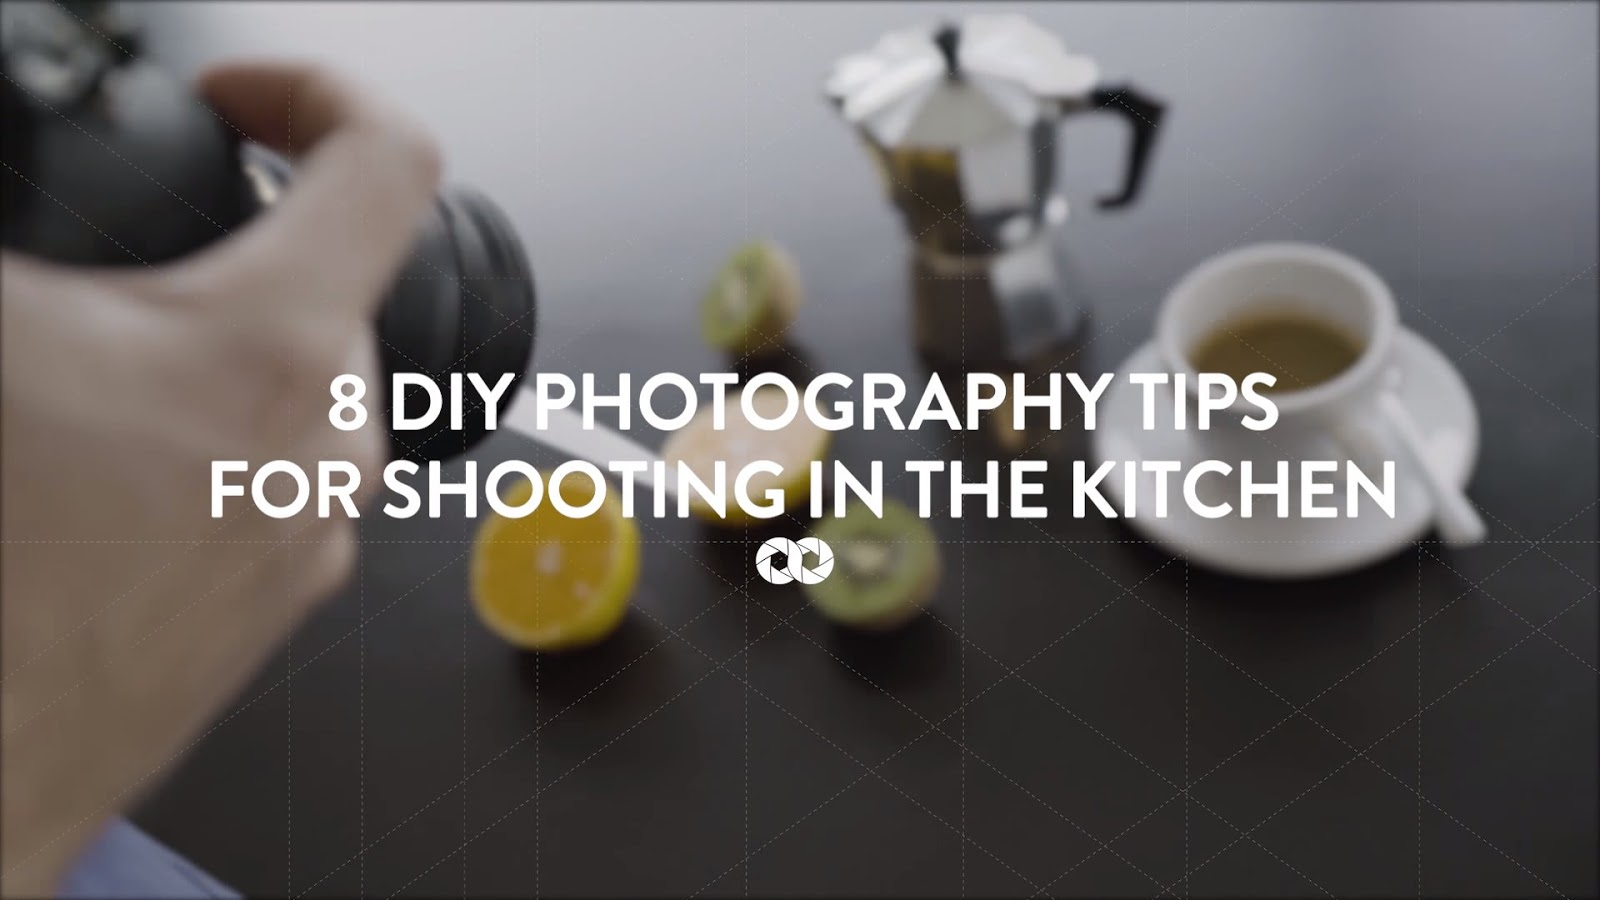 8 DIY photography tips for shooting in the kitchen